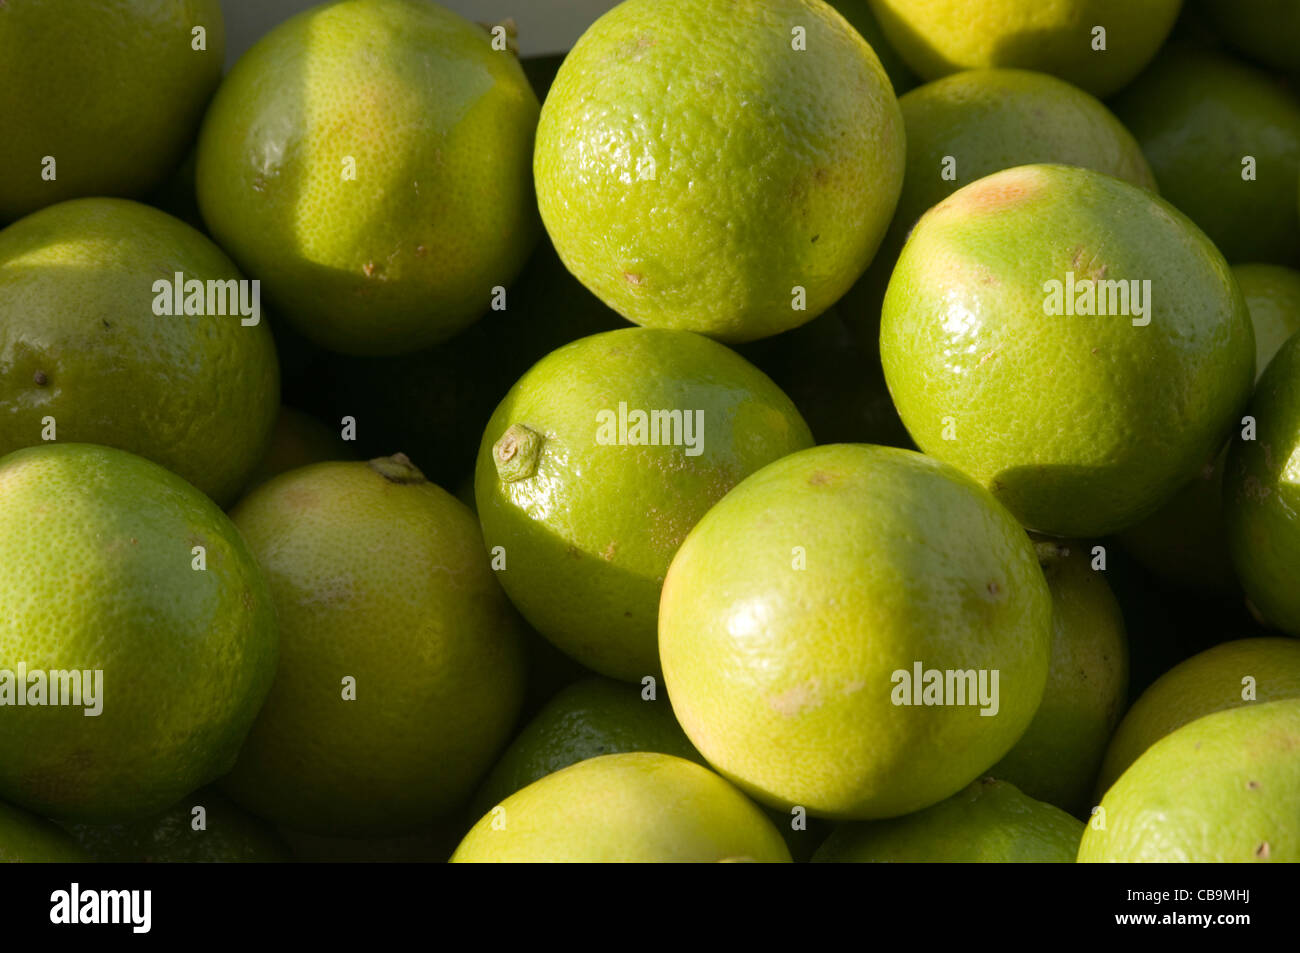 lime limes fresh squeezed freshly - Stock Image